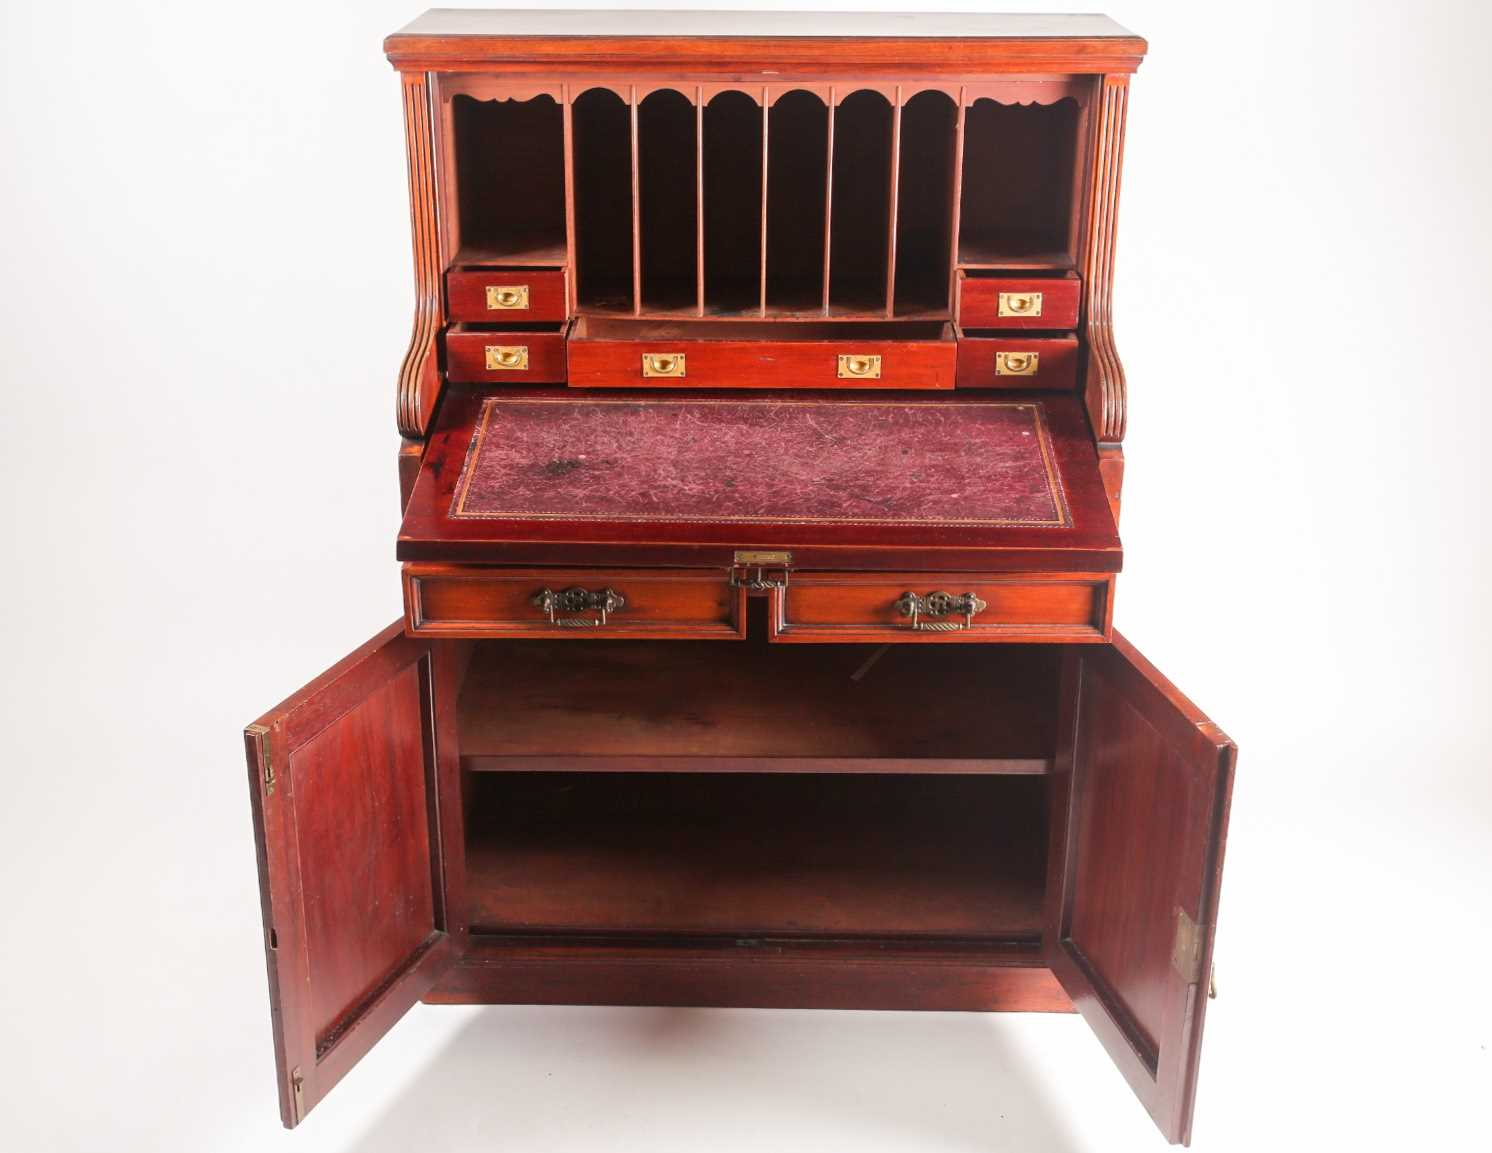 A late 19th-century Aesthetic design walnut fall front secretaire with fitted and leathered - Image 6 of 6